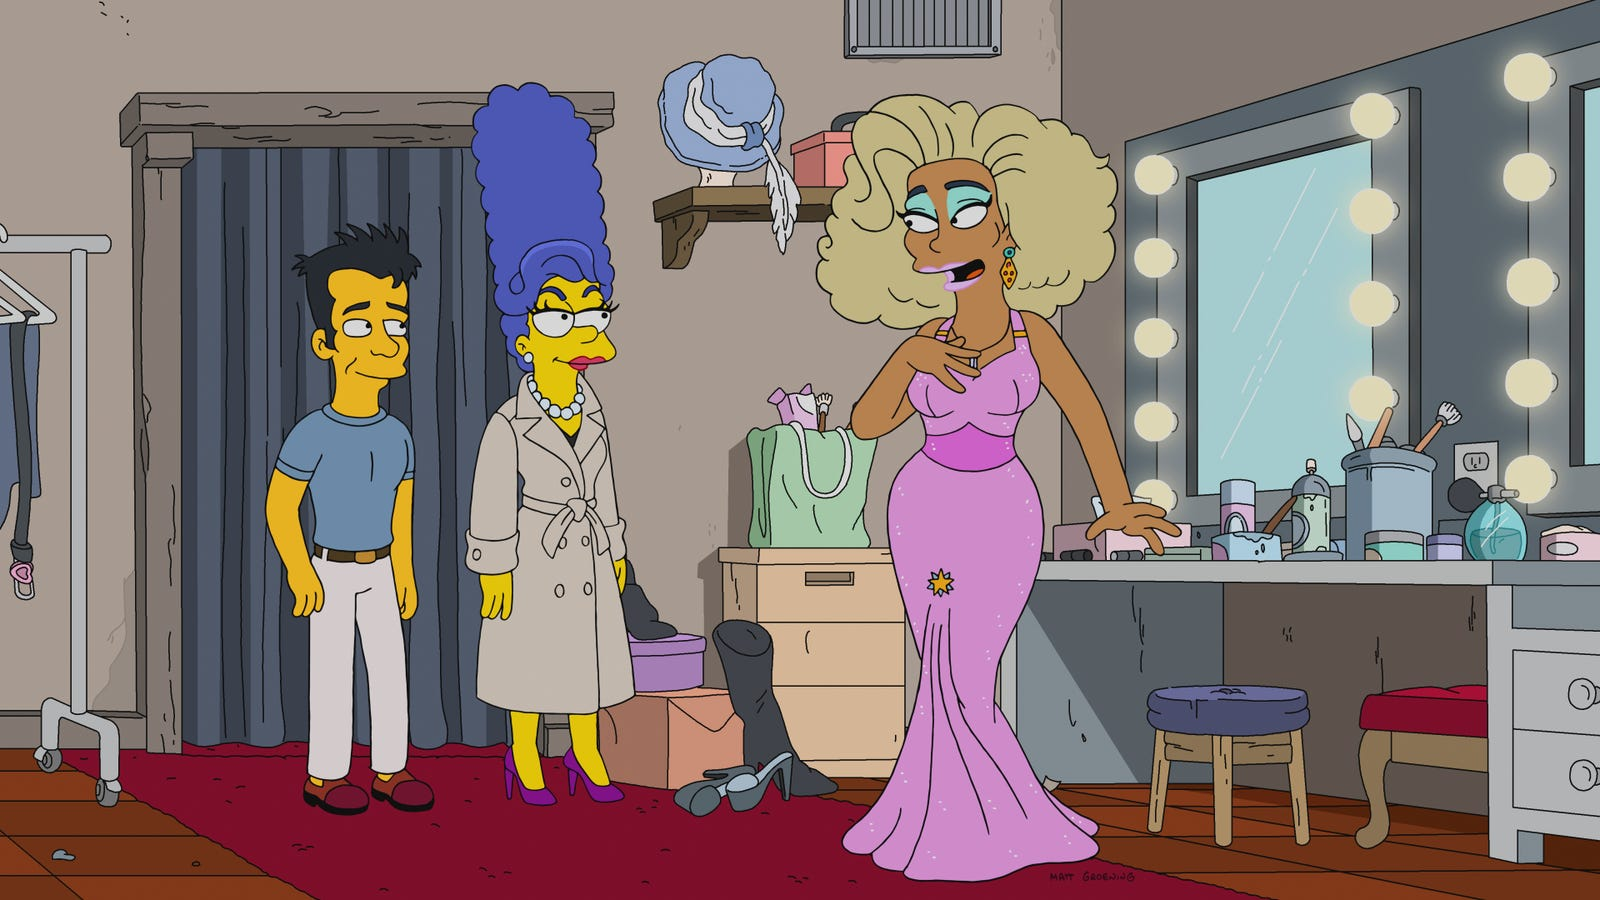 RuPaul helps Marge find her confidence in a delightful, wise episode of The Simpsons